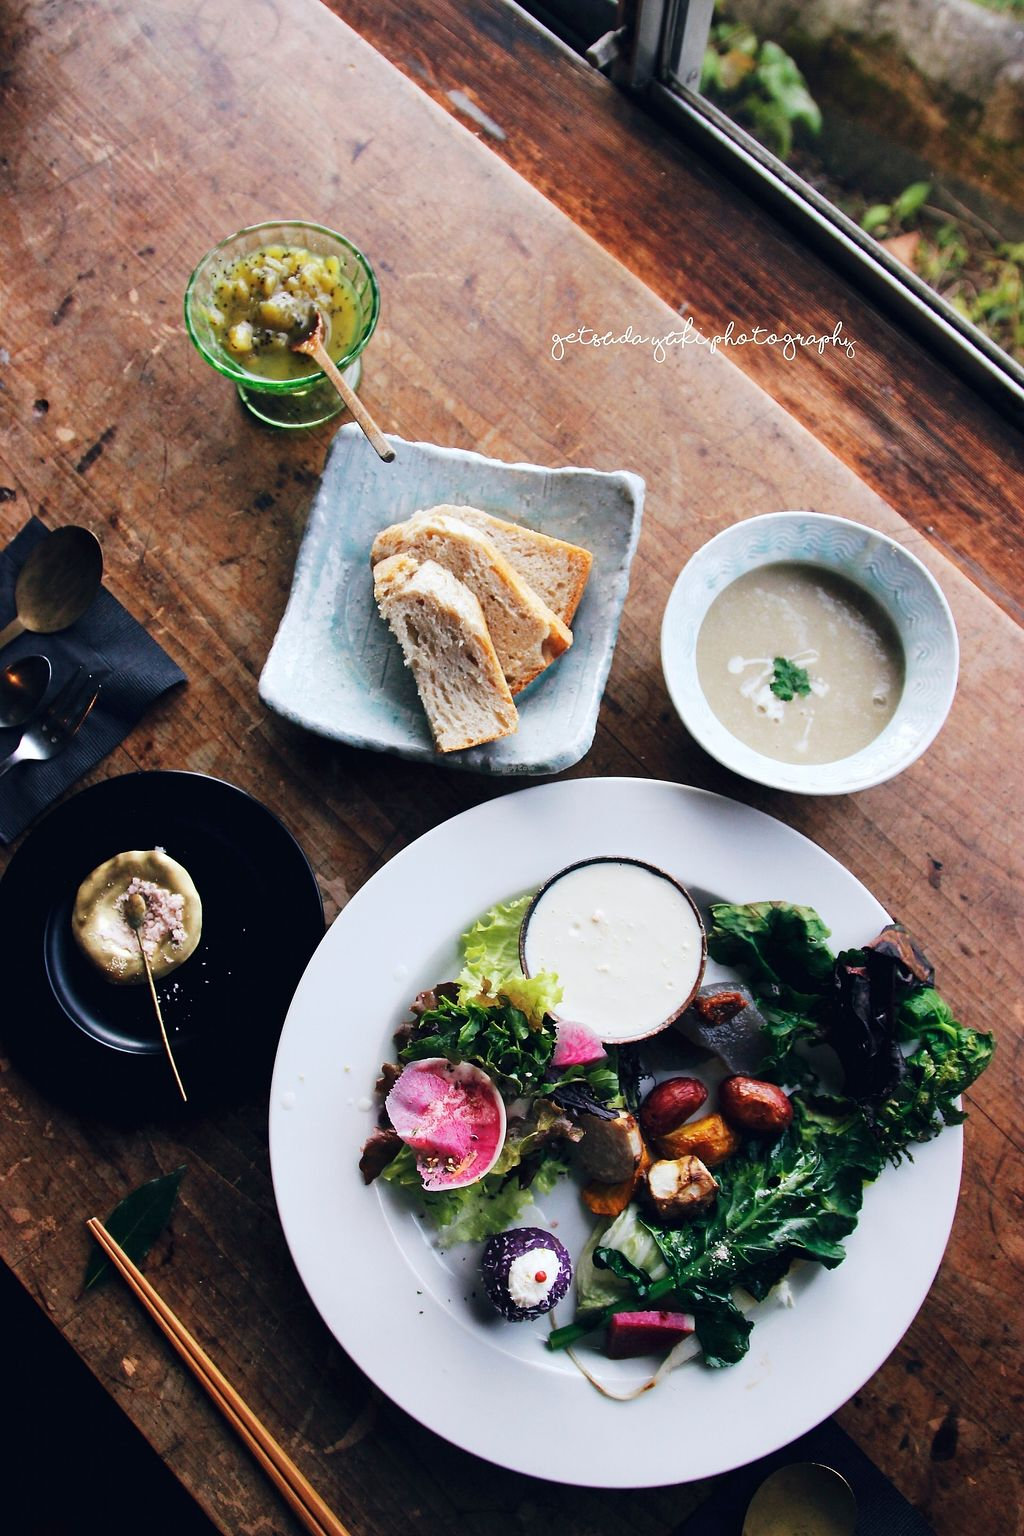 """Photo of Cafe Millet  by <a href=""""/members/profile/YukiLim"""">YukiLim</a> <br/>Lunch plate with fresh seasonal vegetables, homemade kiwi jam and bread, potato soup from Cafe Millet <br/> July 16, 2017  - <a href='/contact/abuse/image/64558/280878'>Report</a>"""